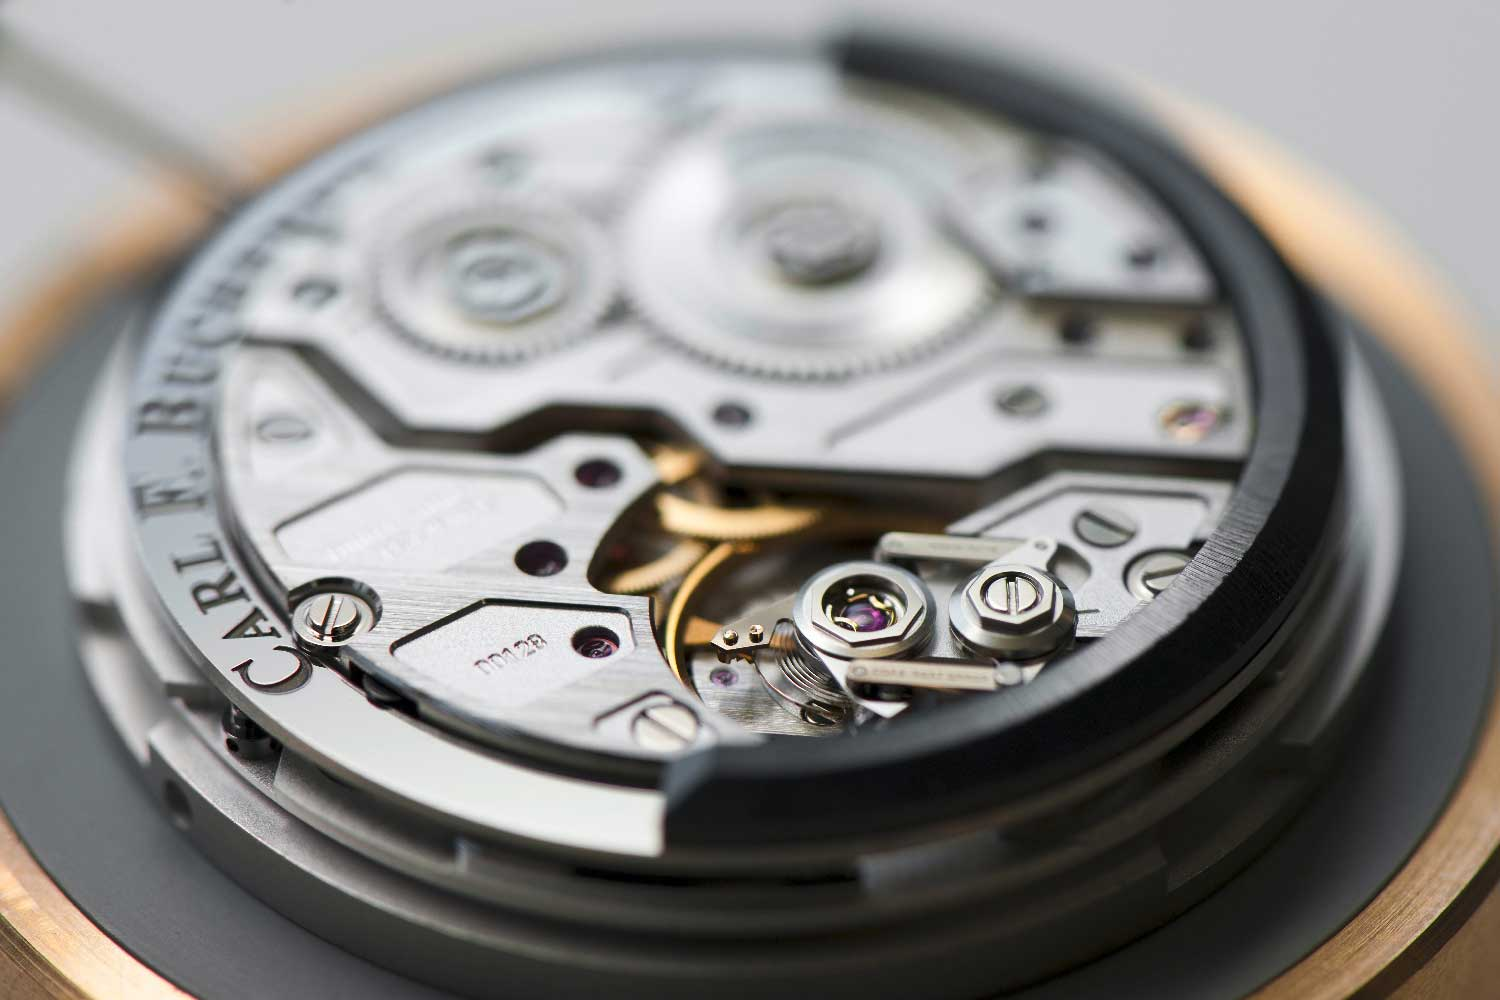 The CFB A1000 movement, featuring the world's first serially-produced peripheral rotor whose oscillating weight orbits the movement.